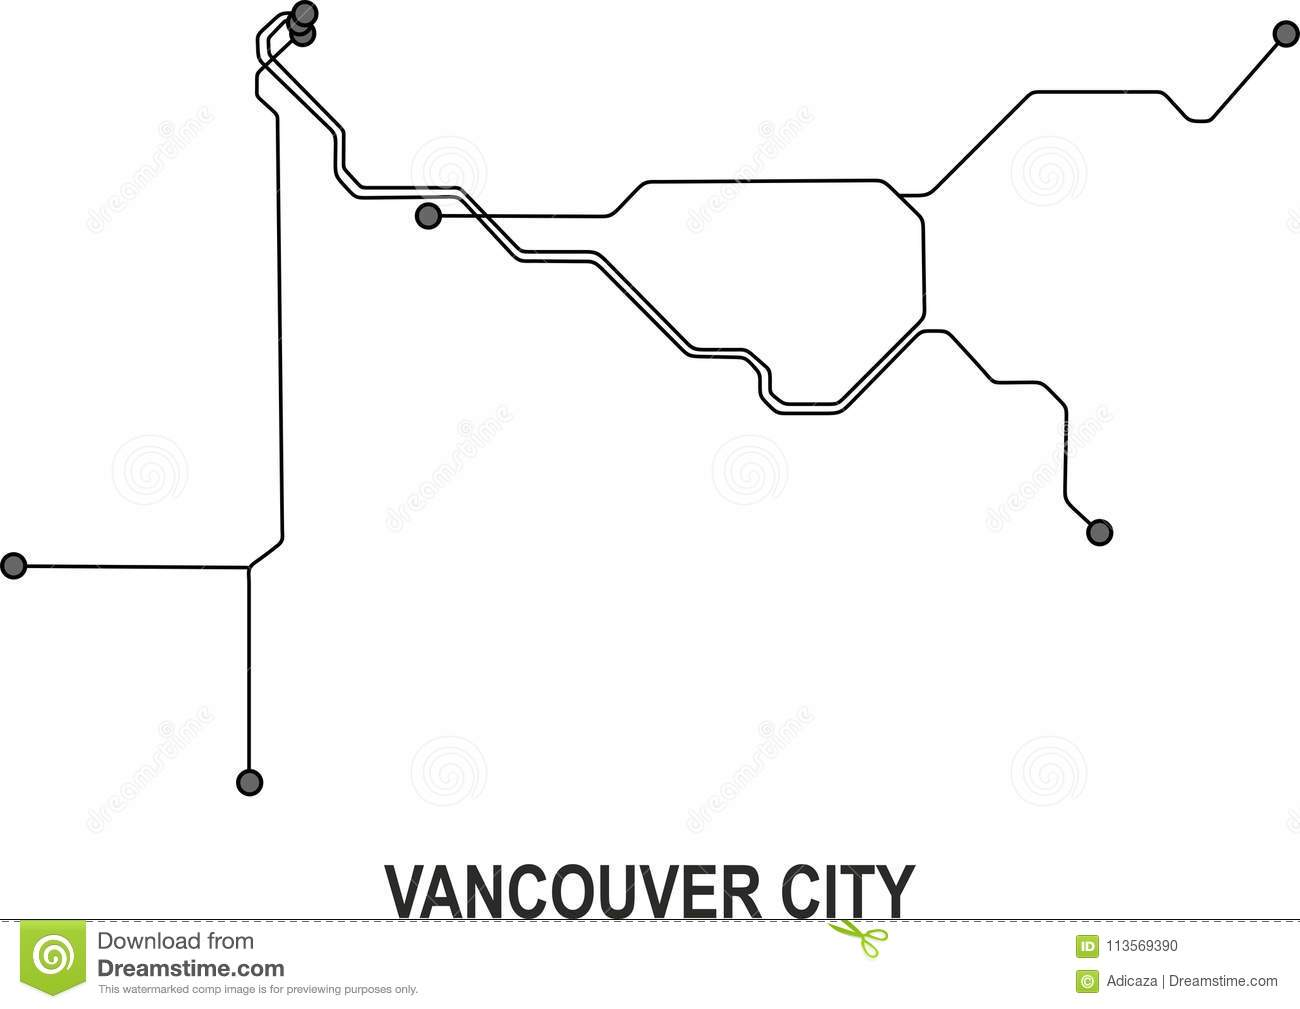 Vancouver Subway Map.Vancouver City Map Stock Vector Illustration Of Subway 113569390